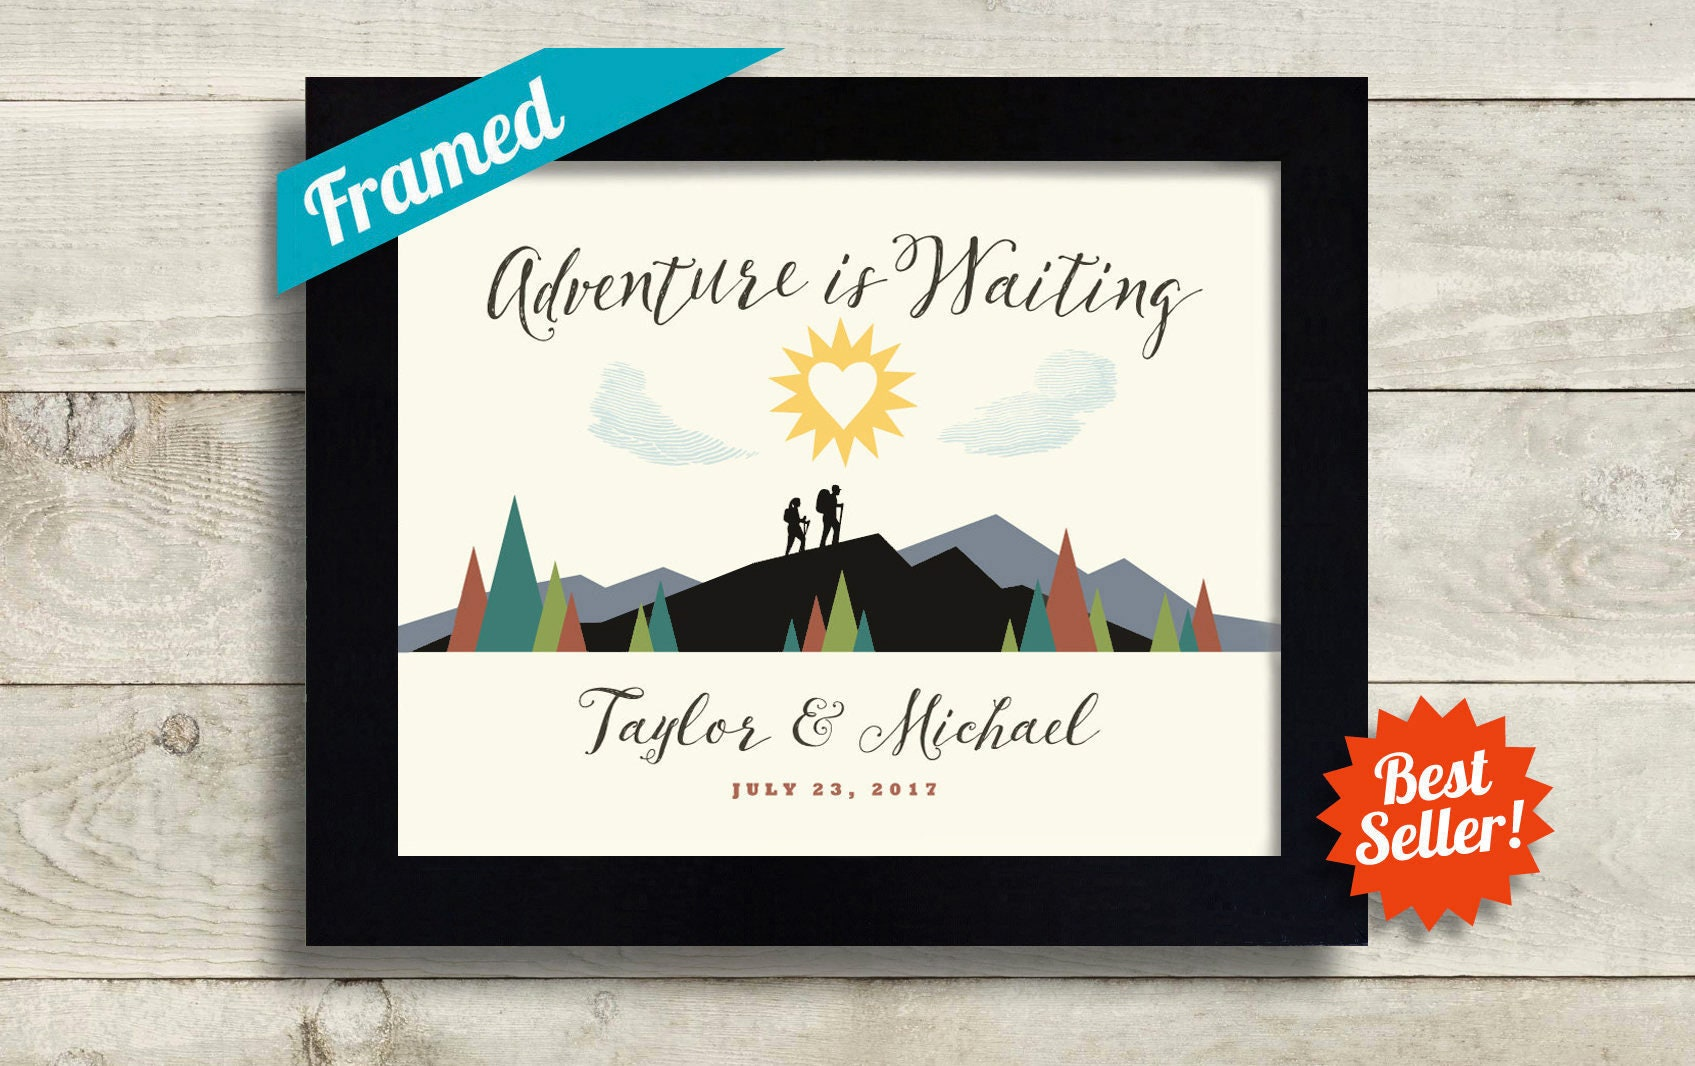 Practical Wedding Gifts For The Newlyweds: Outdoor Enthusiast Wedding Gift Hiking Gift For Newlyweds